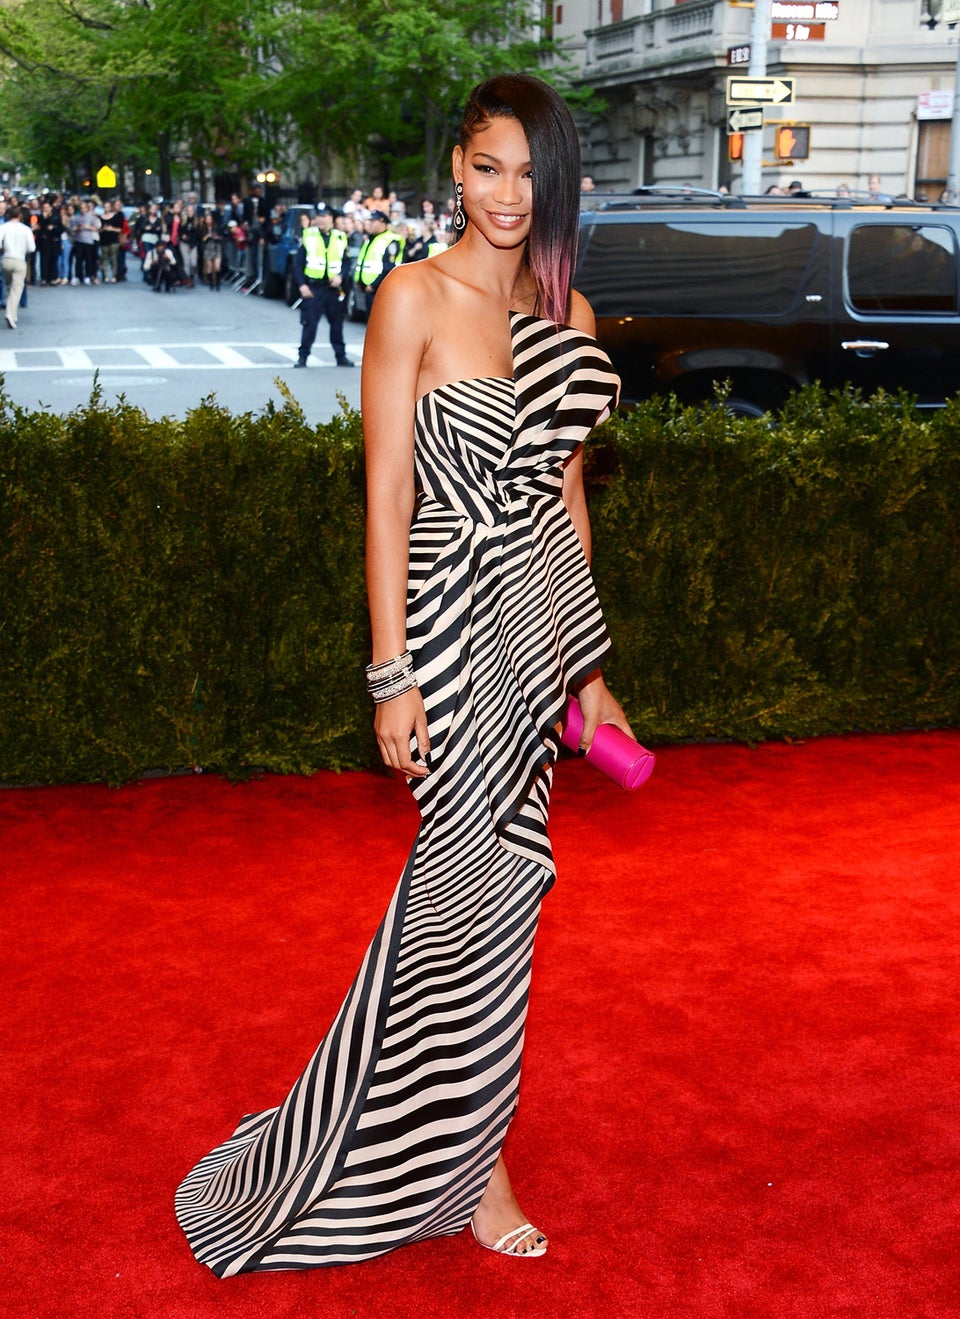 Must-See: Live At The 2013 MET Gala